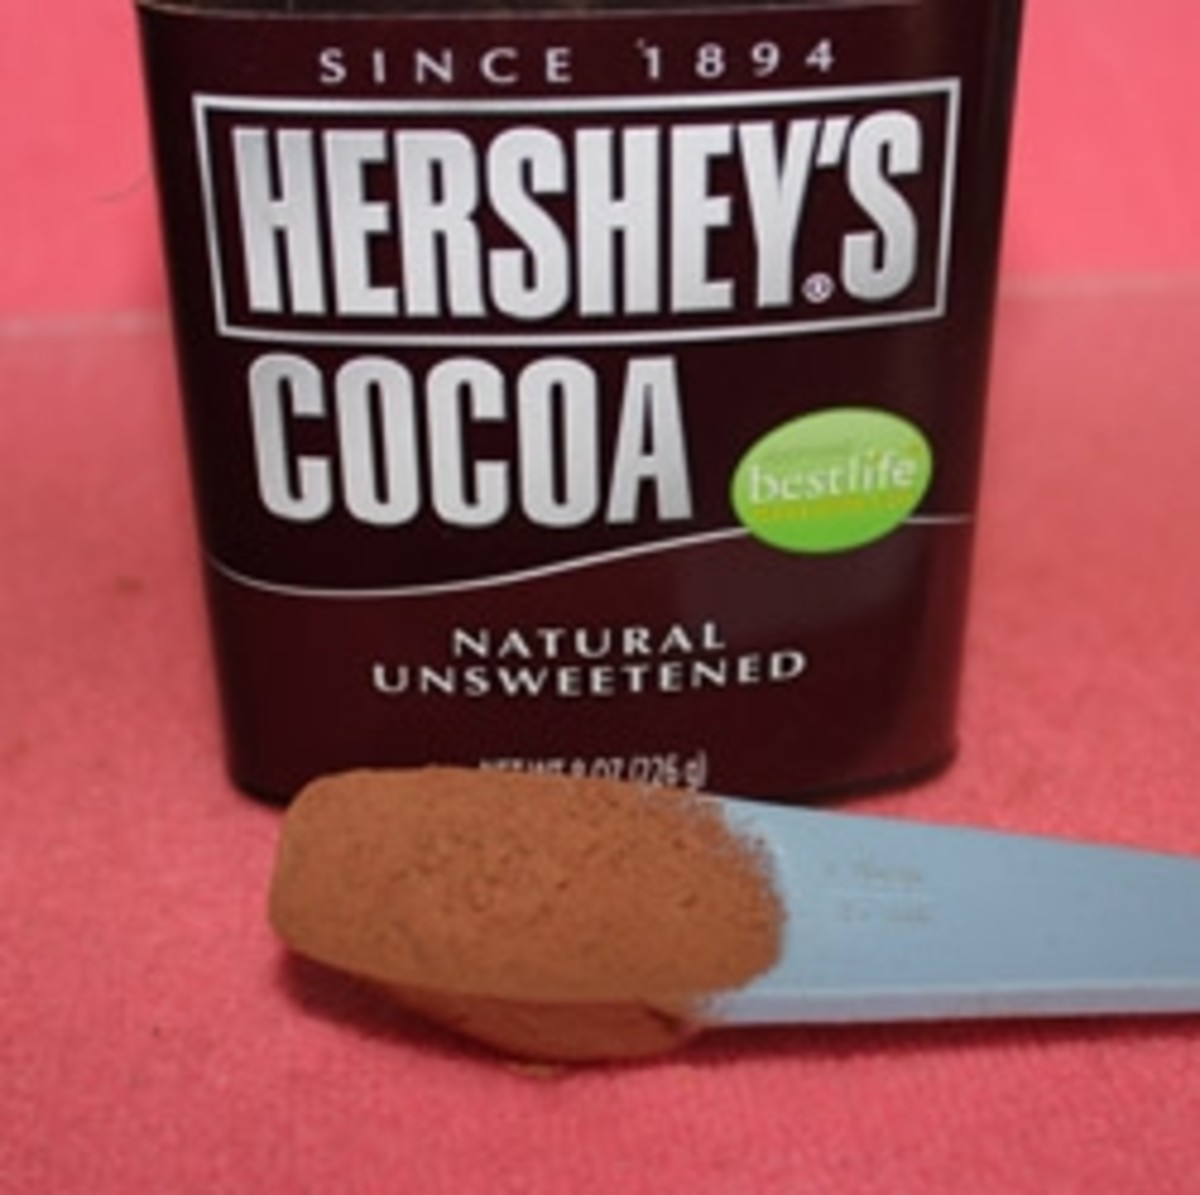 Make sure the cocoa is unsweetened. The stevia will make up for its bitterness.